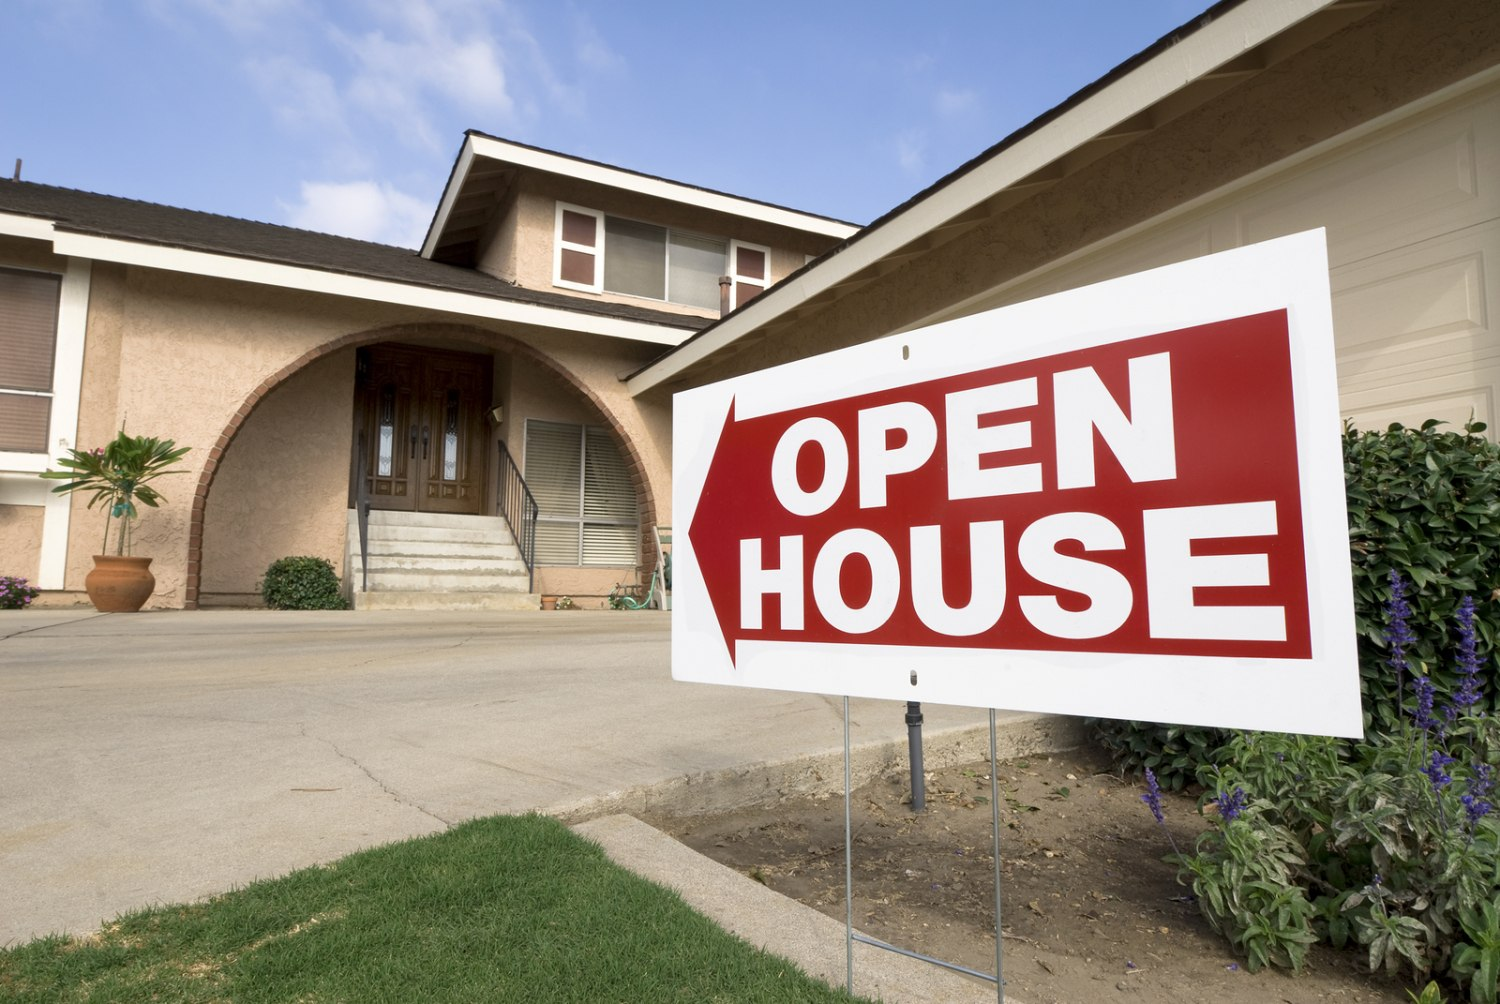 Be a smart homebuyer: Attend open houses